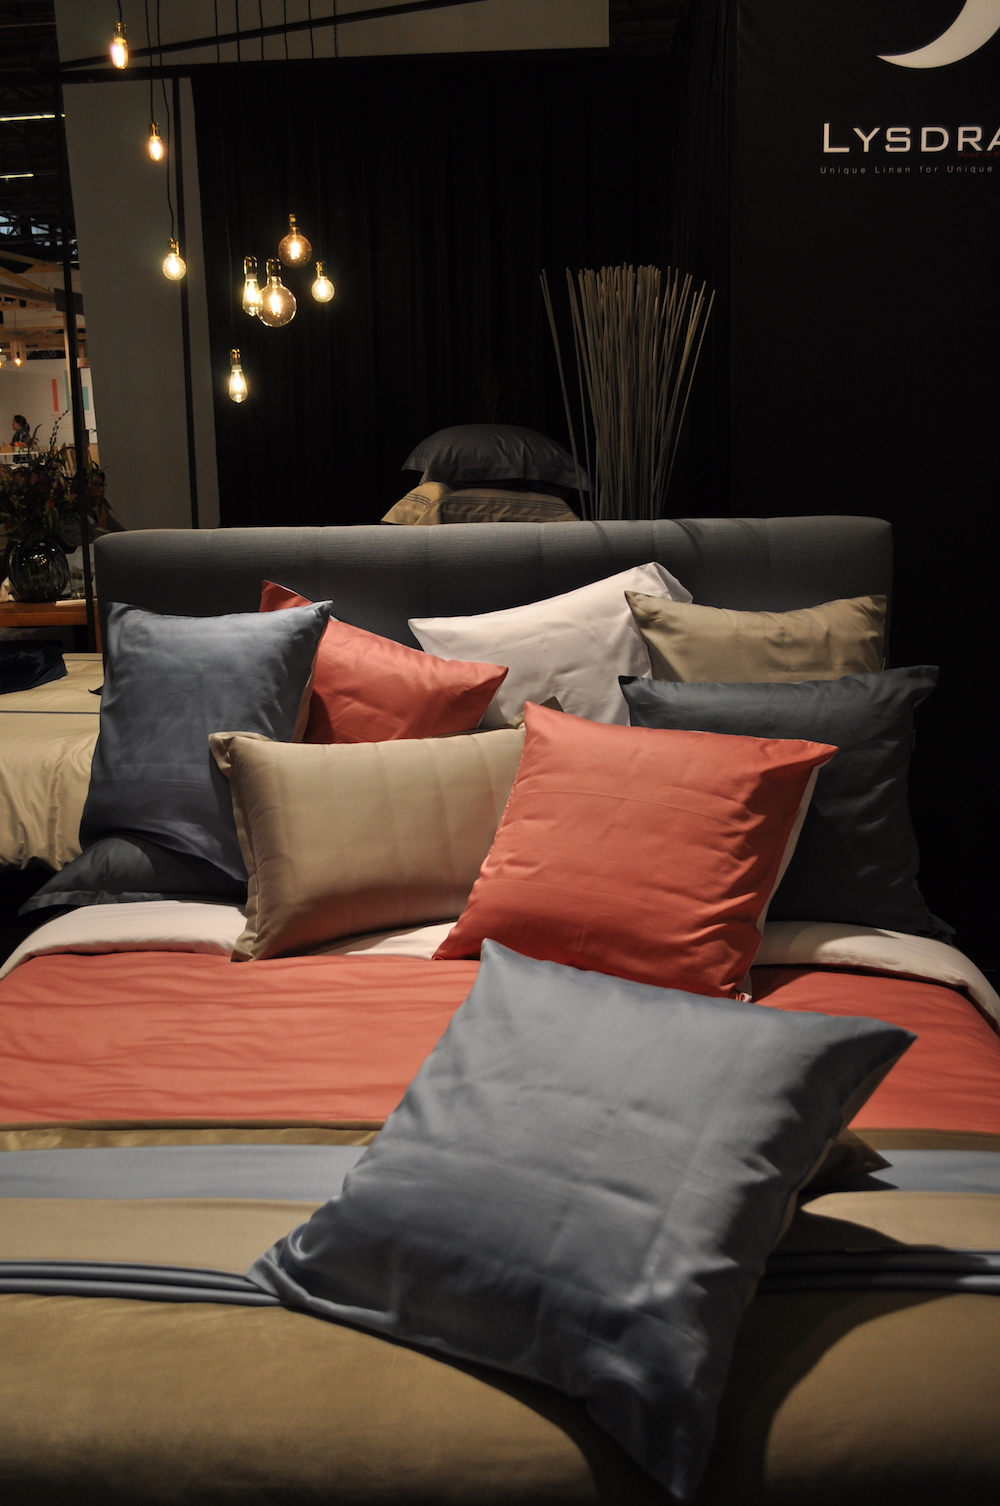 Styling ID Blog Intirio Gent presenteert Intimacy Interior Trends Lysdrap bed